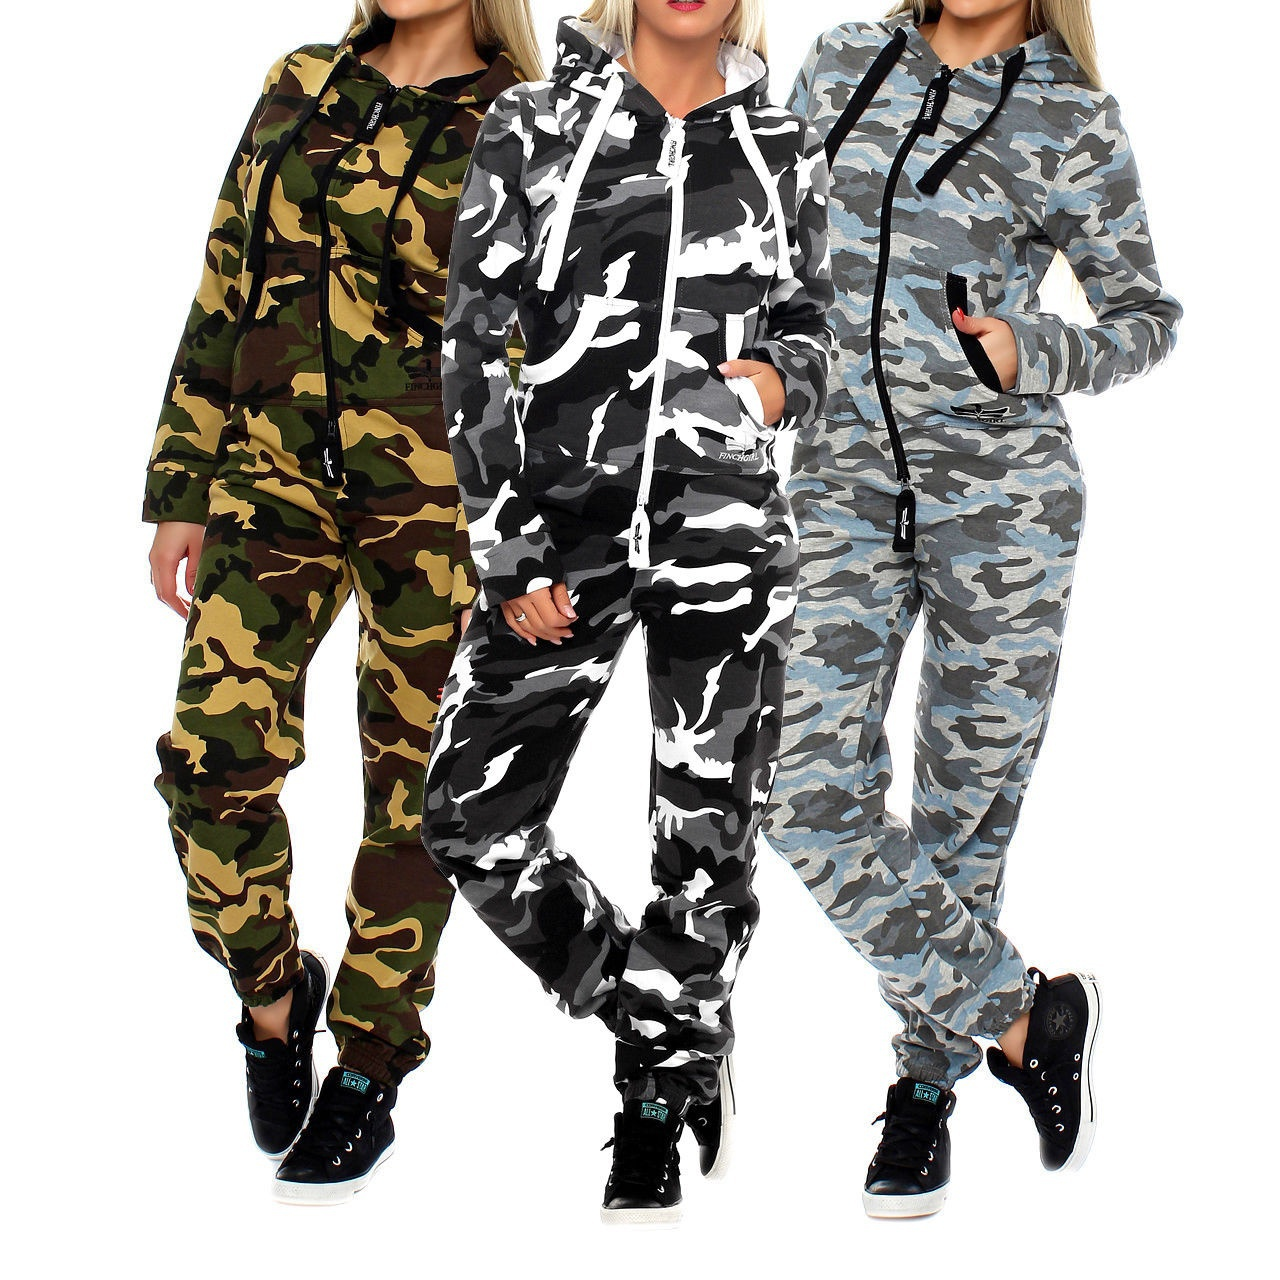 ZOGAA Tracksuit TWO PIECE SET Camouflage T Shirt Crop Top Leggings for Women Fitness Track Pant Work Out Sporting Suit Female in Women 39 s Sets from Women 39 s Clothing